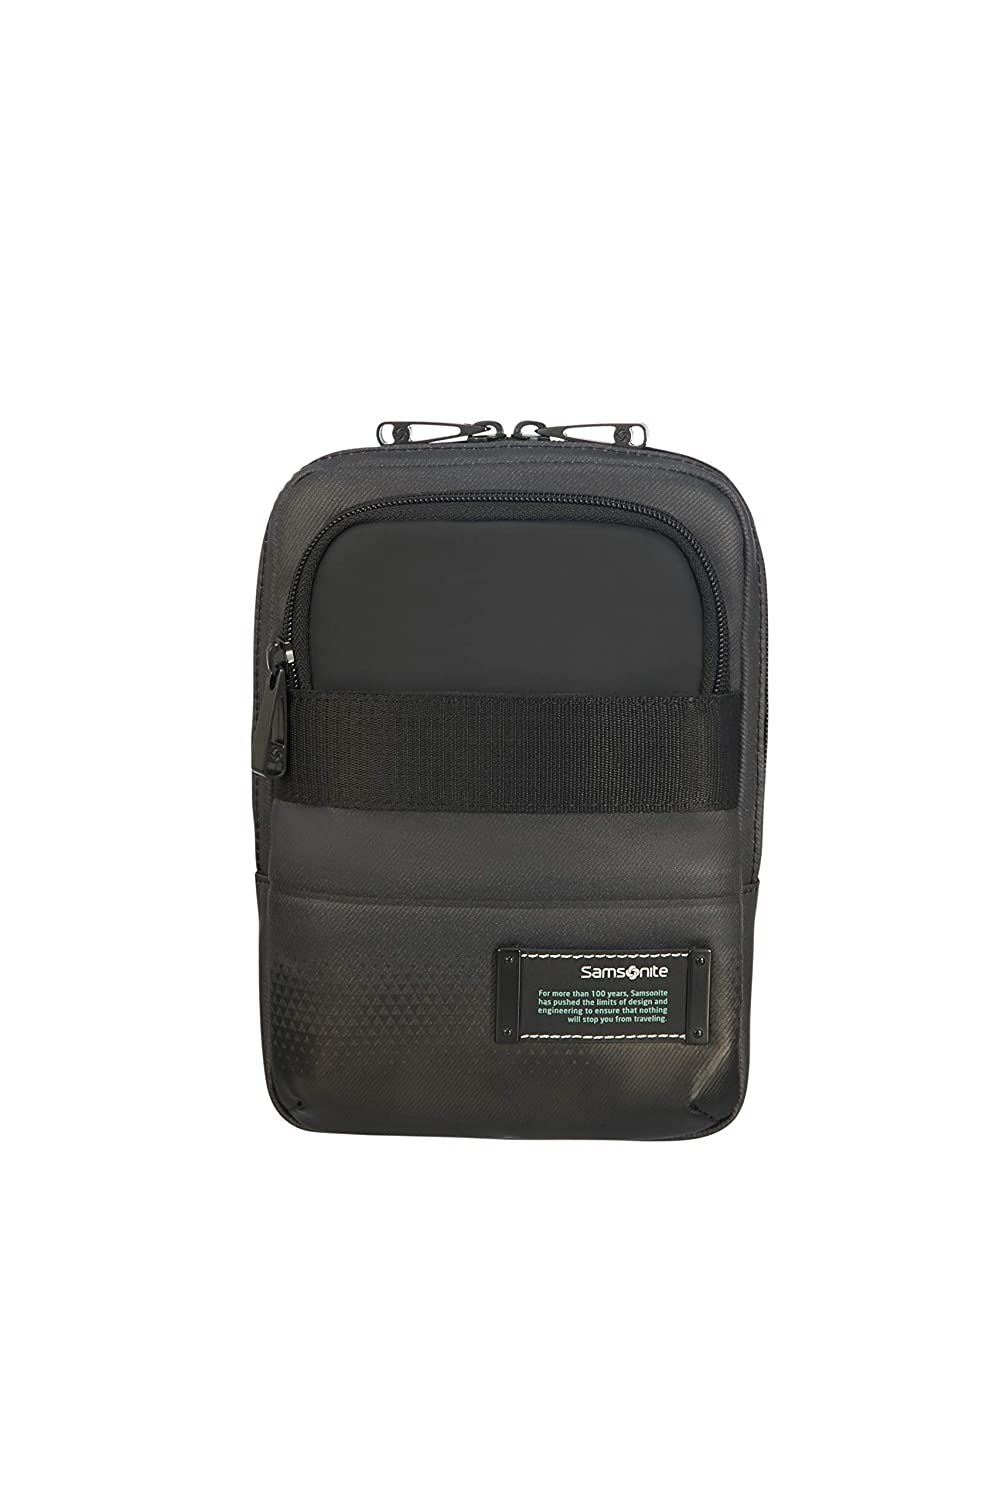 Amazon.com: Samsonite Cityvibe - Bolso bandolera para tablet ...